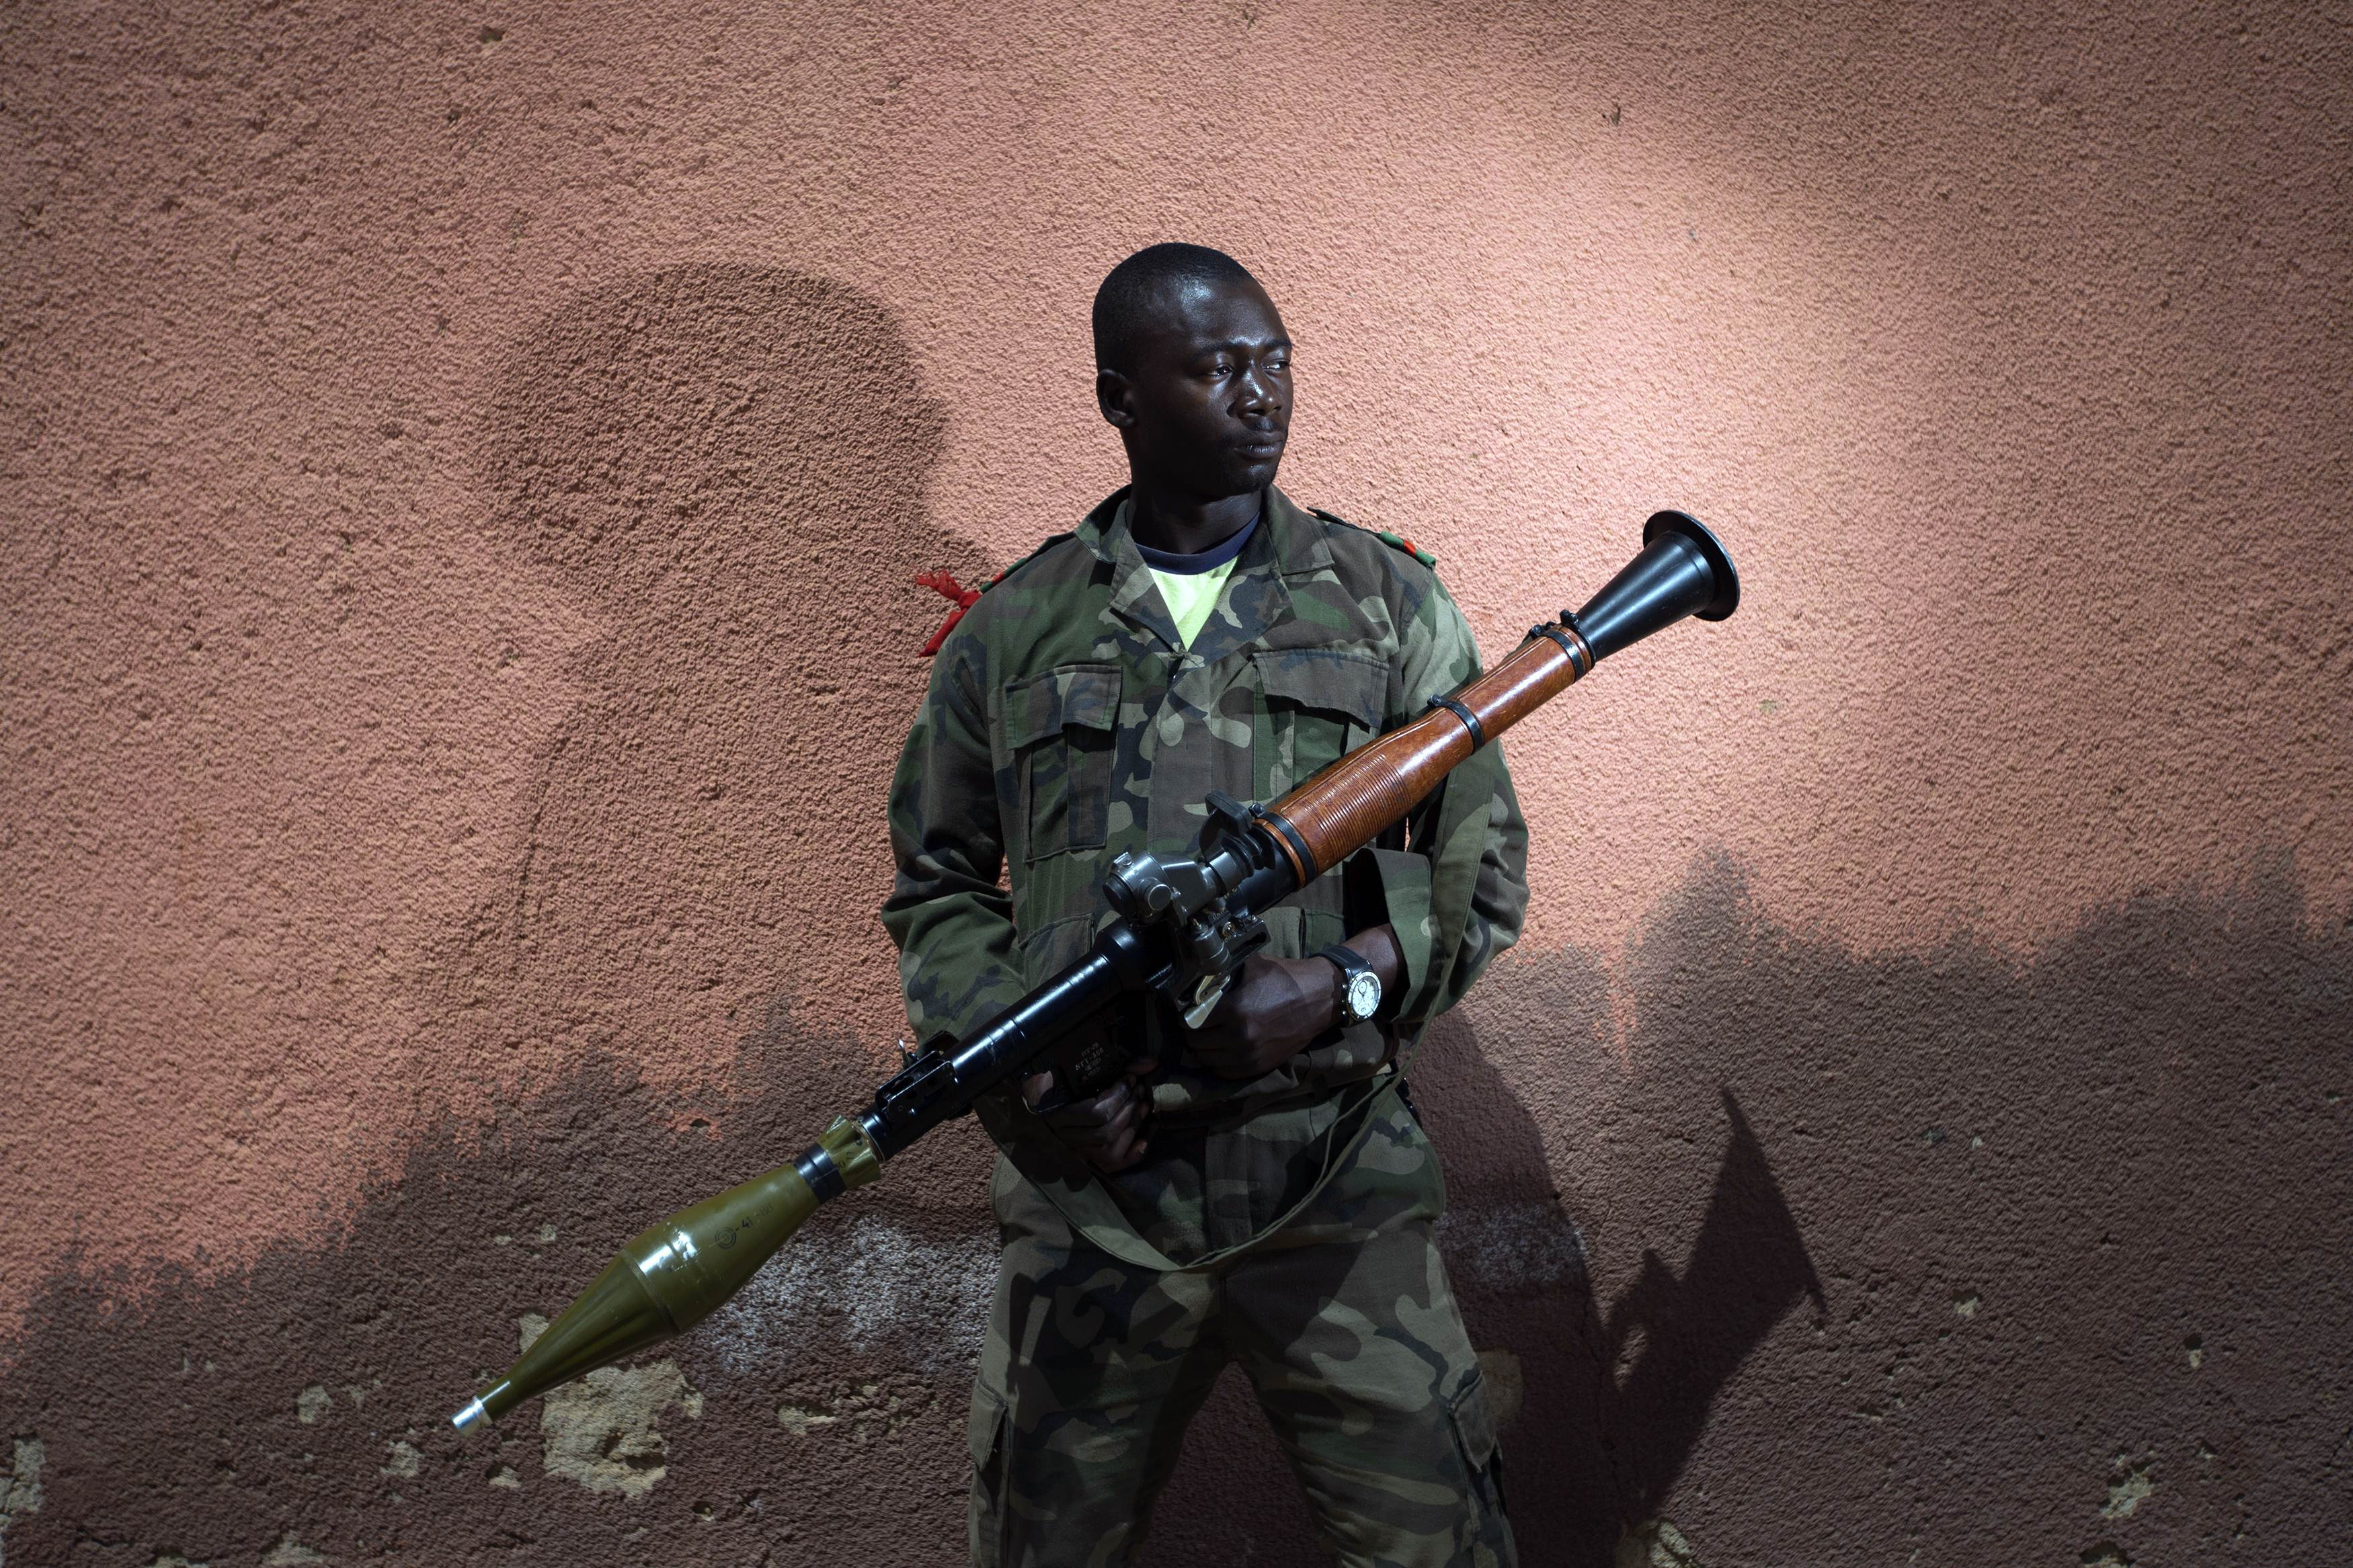 Malian army soldier Lassine Traore, aged 24, holds a  bazooka in Gao, some 1,200 kilometres north of Bamako. After recapturing the north's cities from the Al Qaeda groups that had controlled them since April 2012, the six-week-long French-led offensive took the fight to the retreating Islamist insurgents' toughest desert bastions.?Photo by AFP